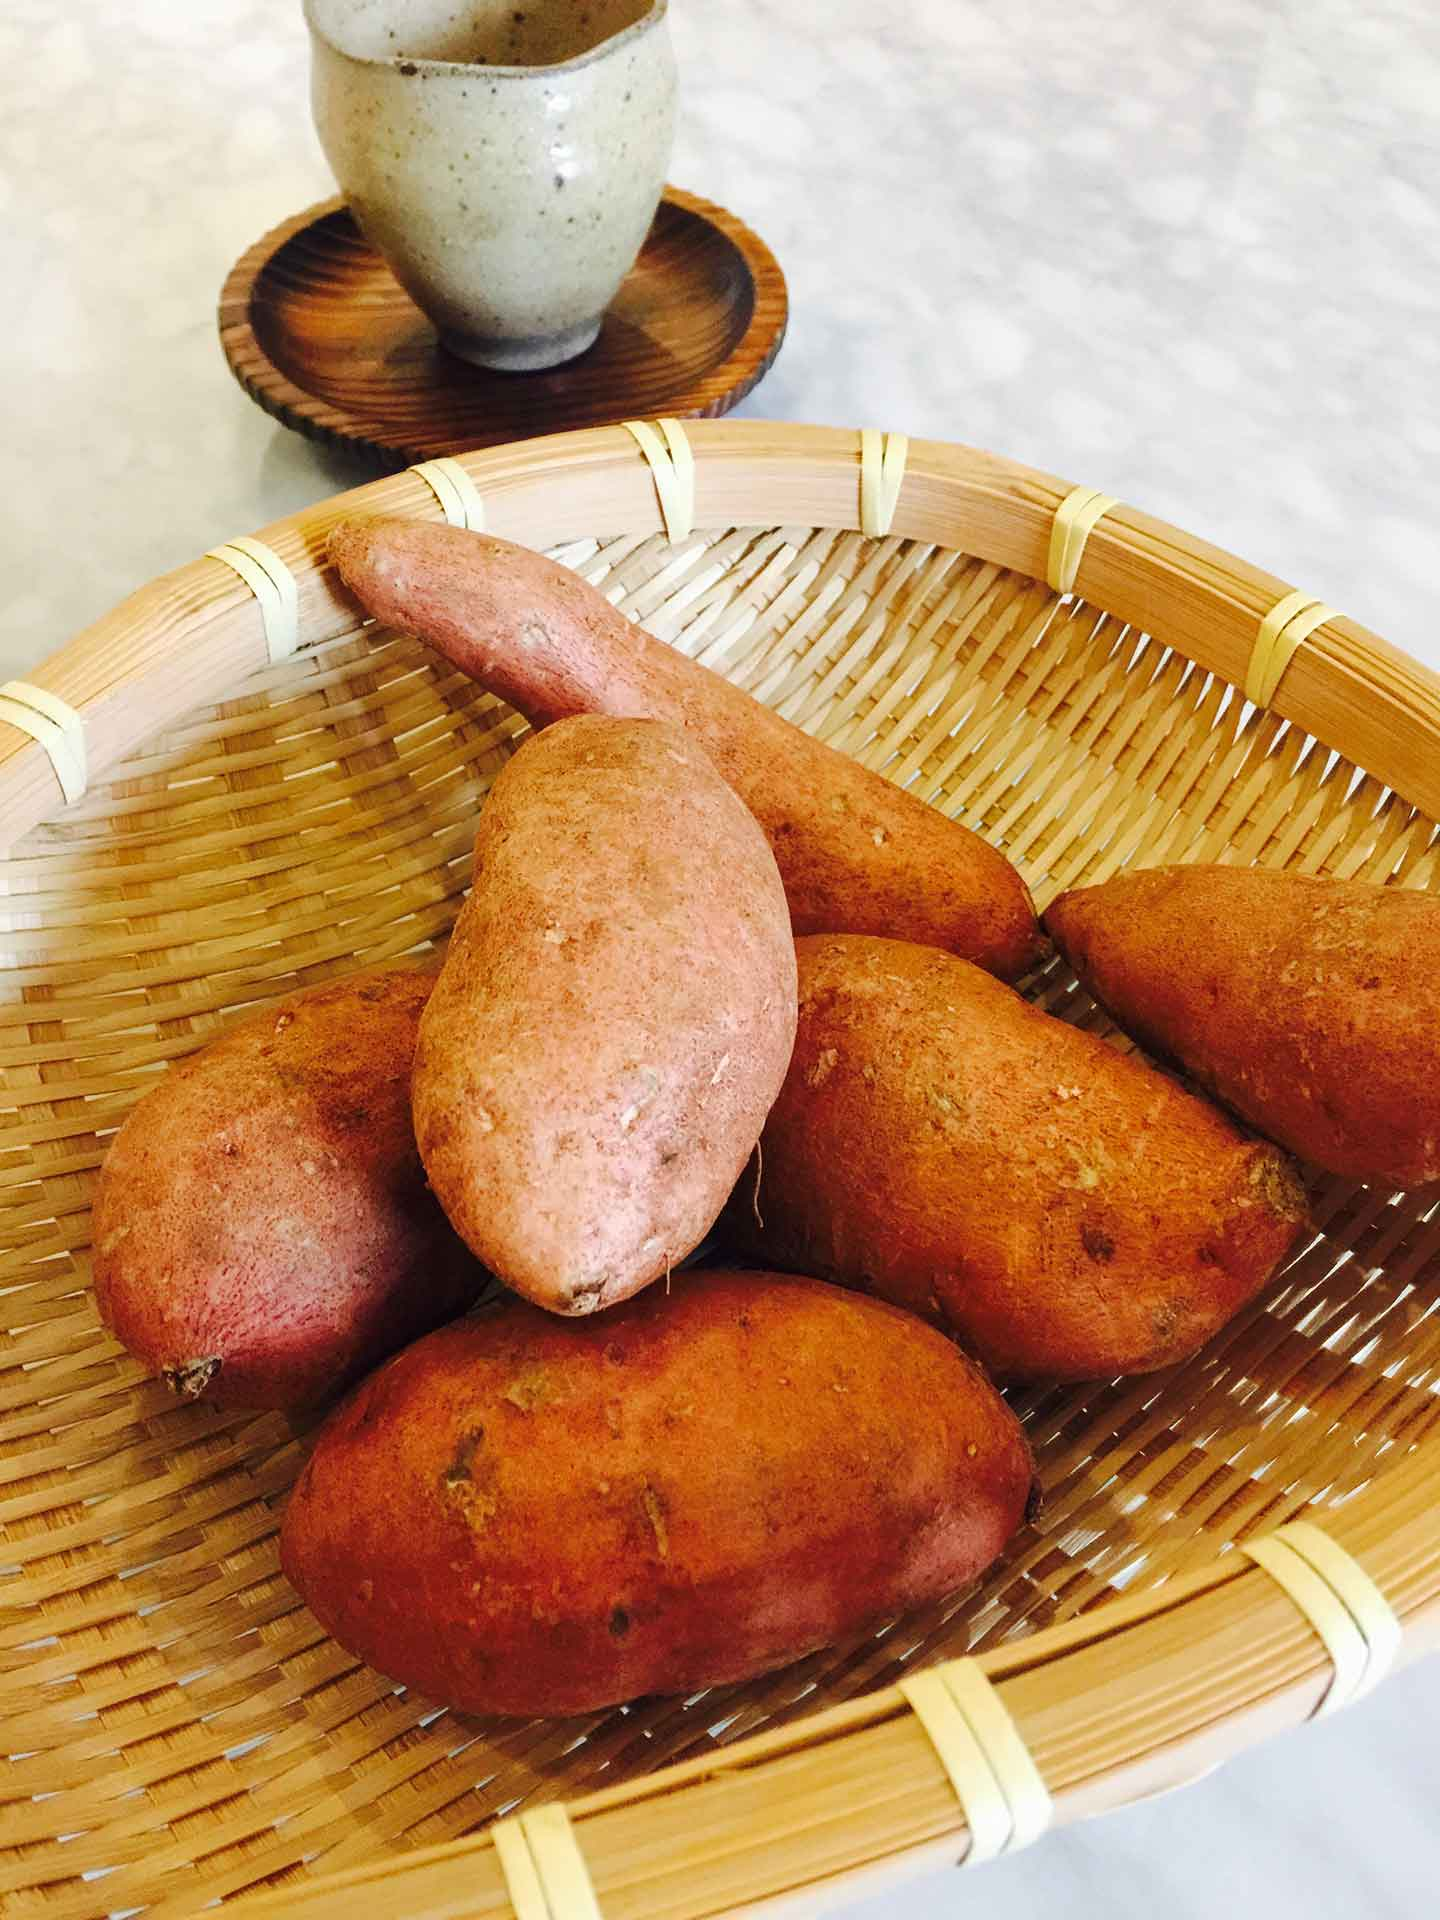 japanese sweet potatoes ready for cooking